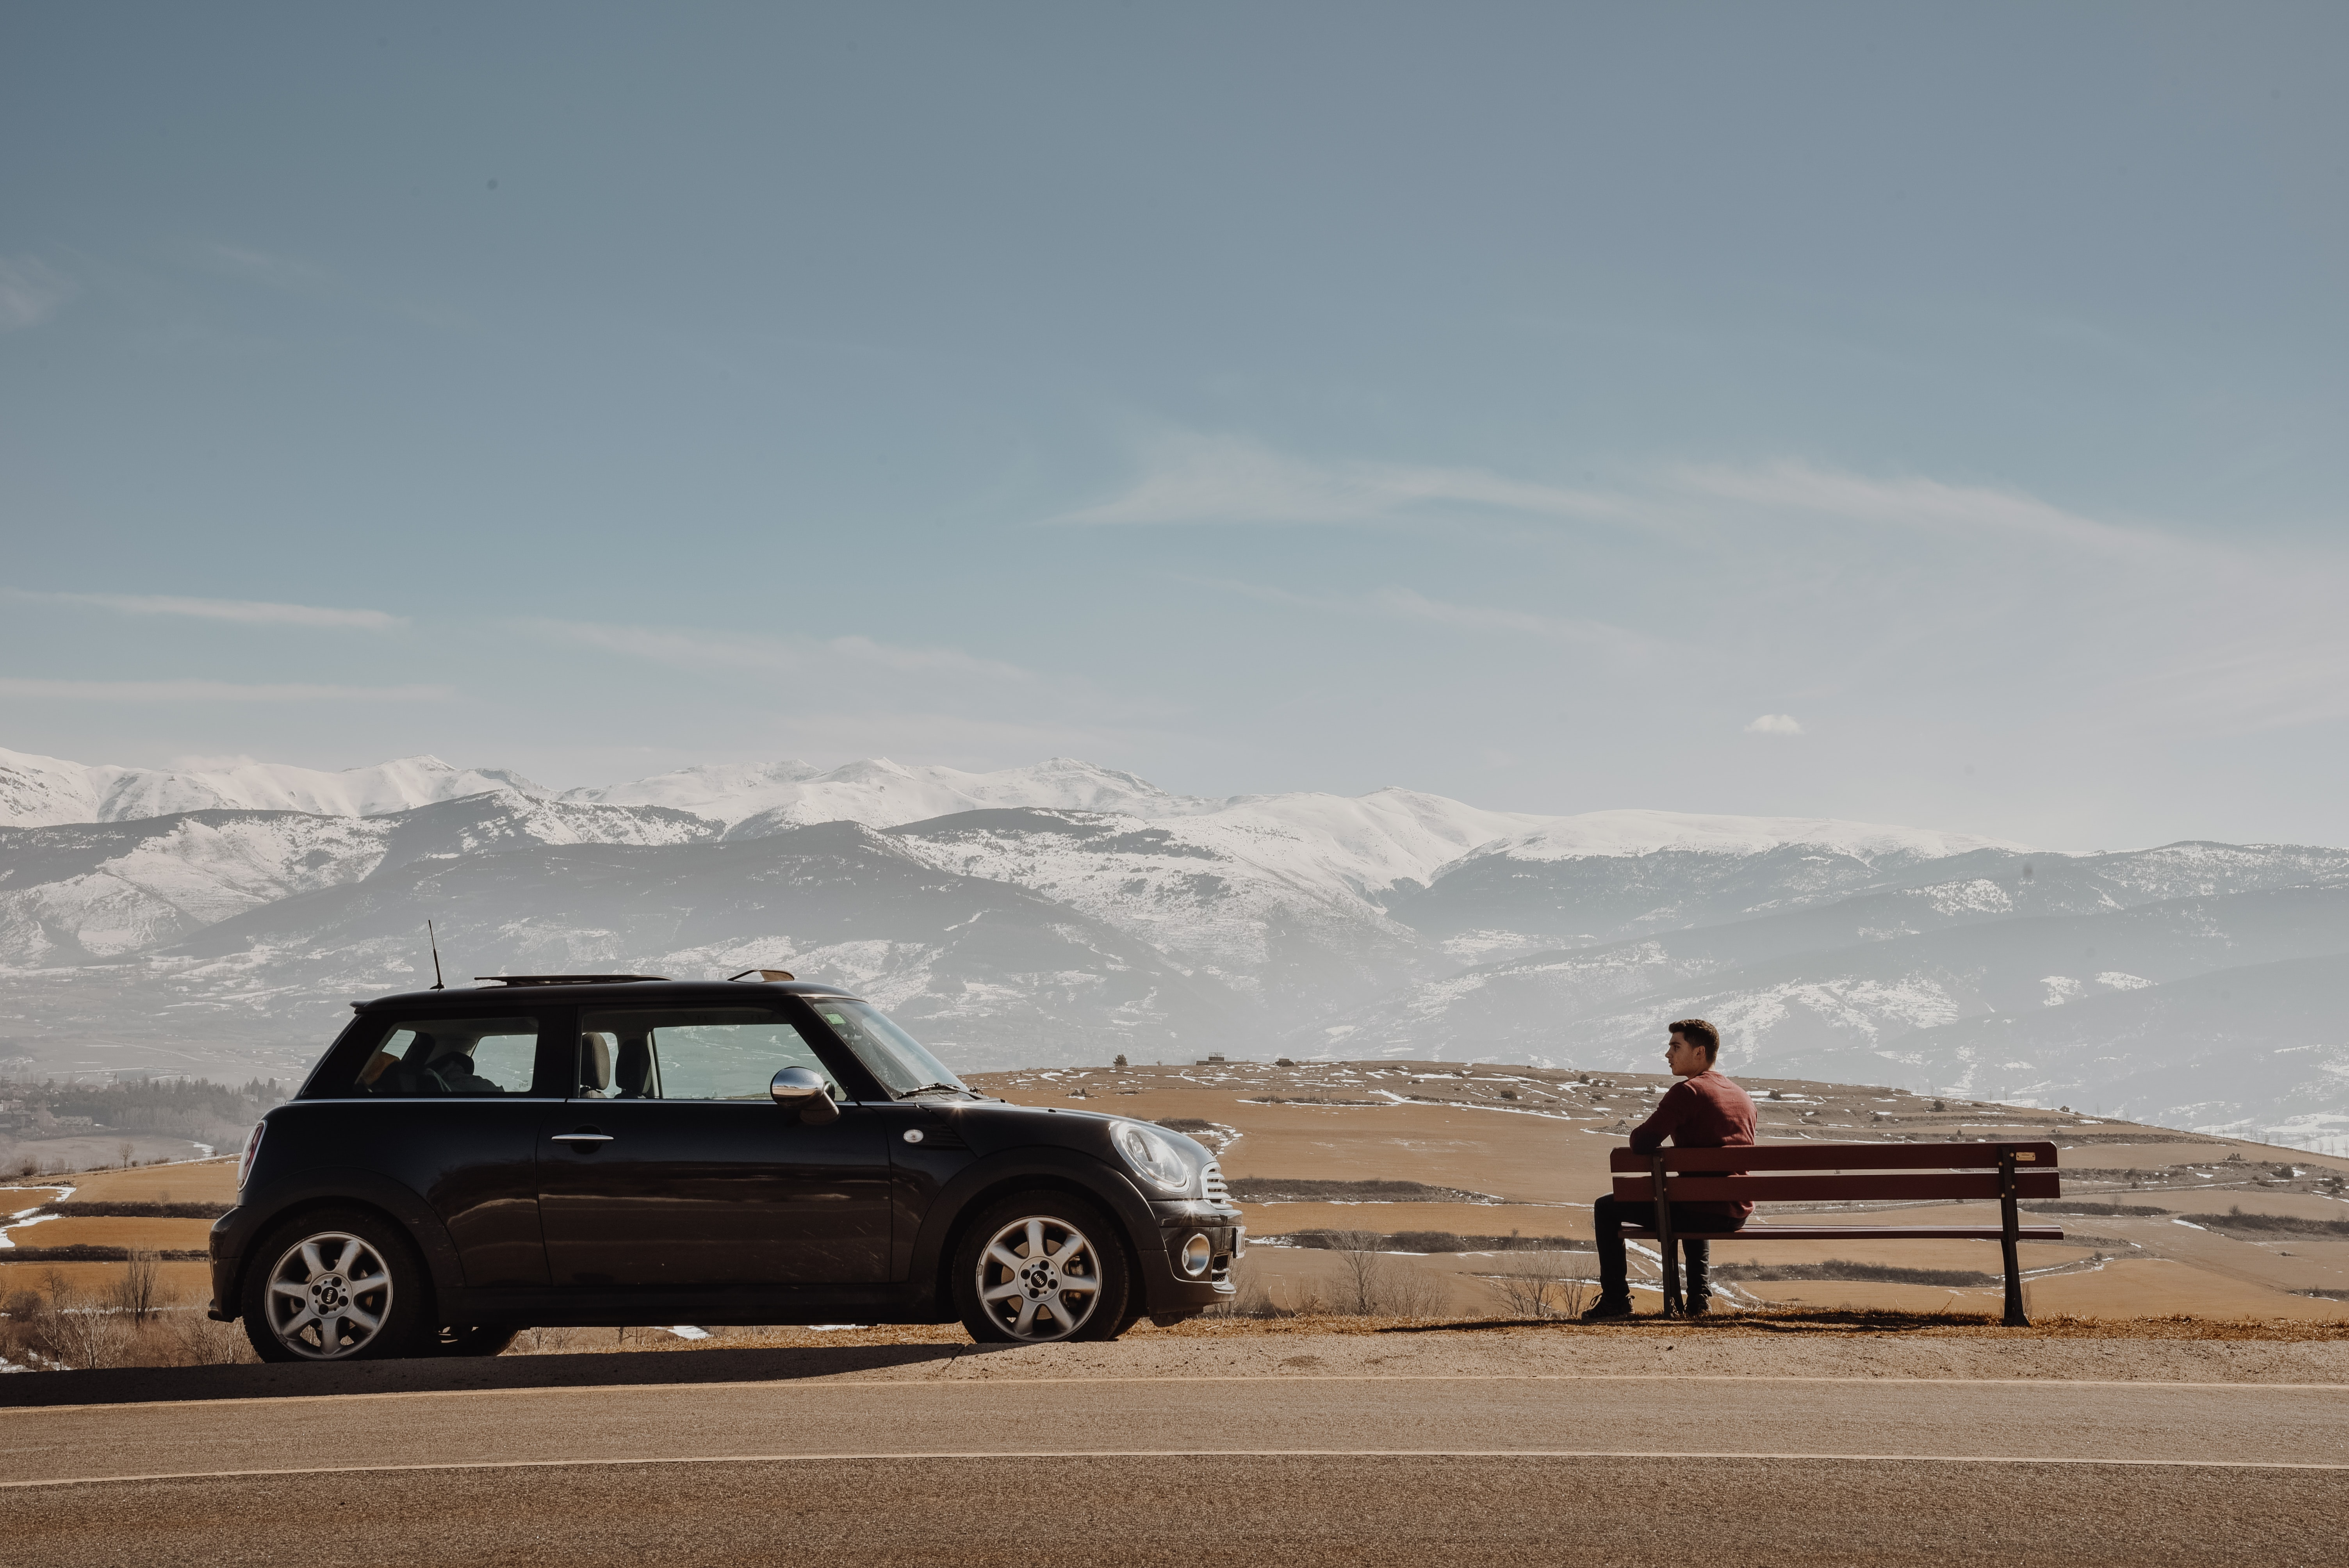 man sitting on the bench near black 5-door hatchback overlooking snow-capped mountains